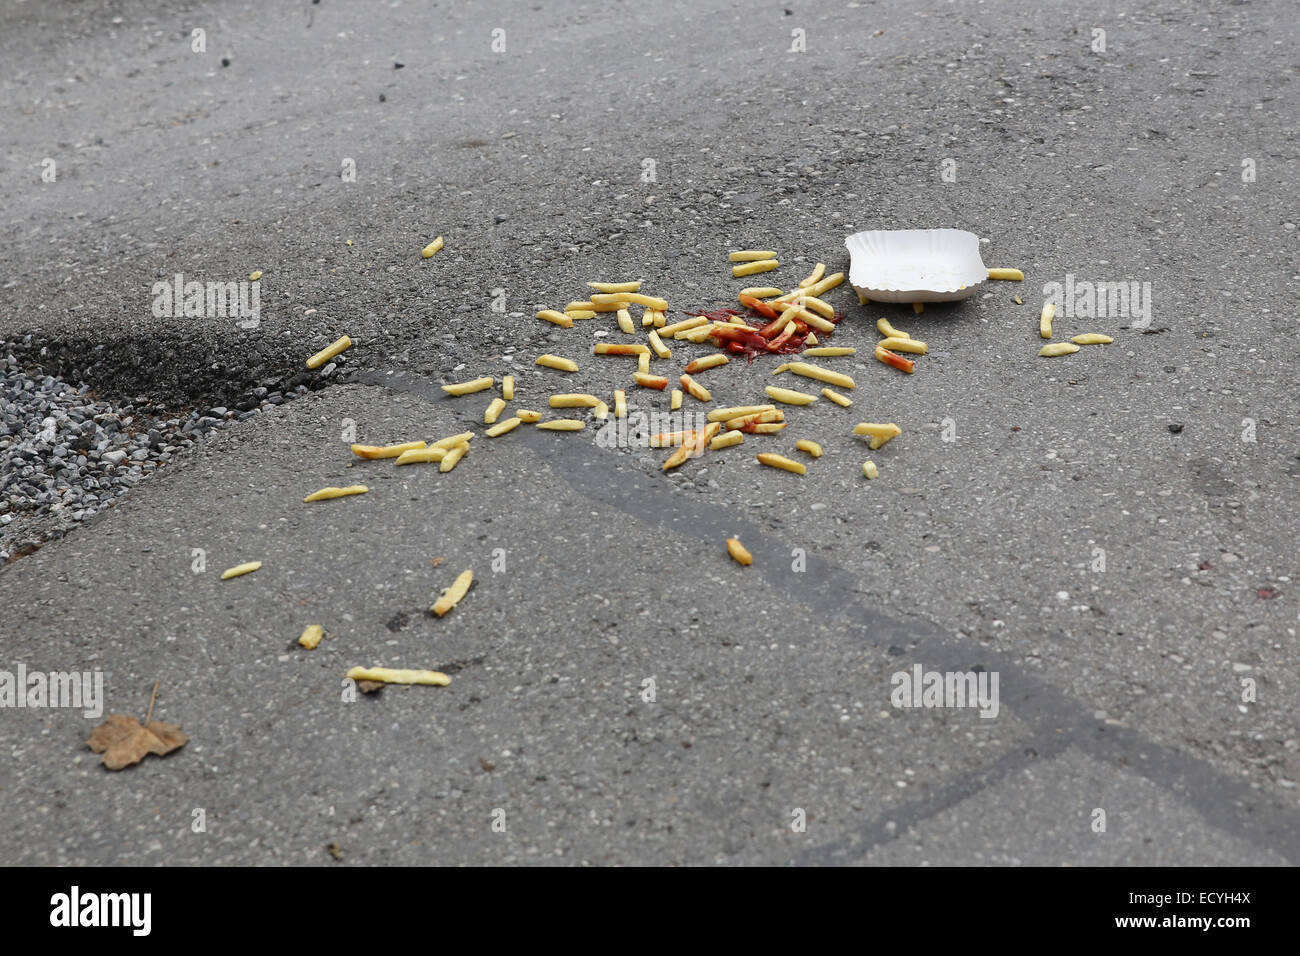 spilled drop fries ground careless waste dirty mess - Stock Image